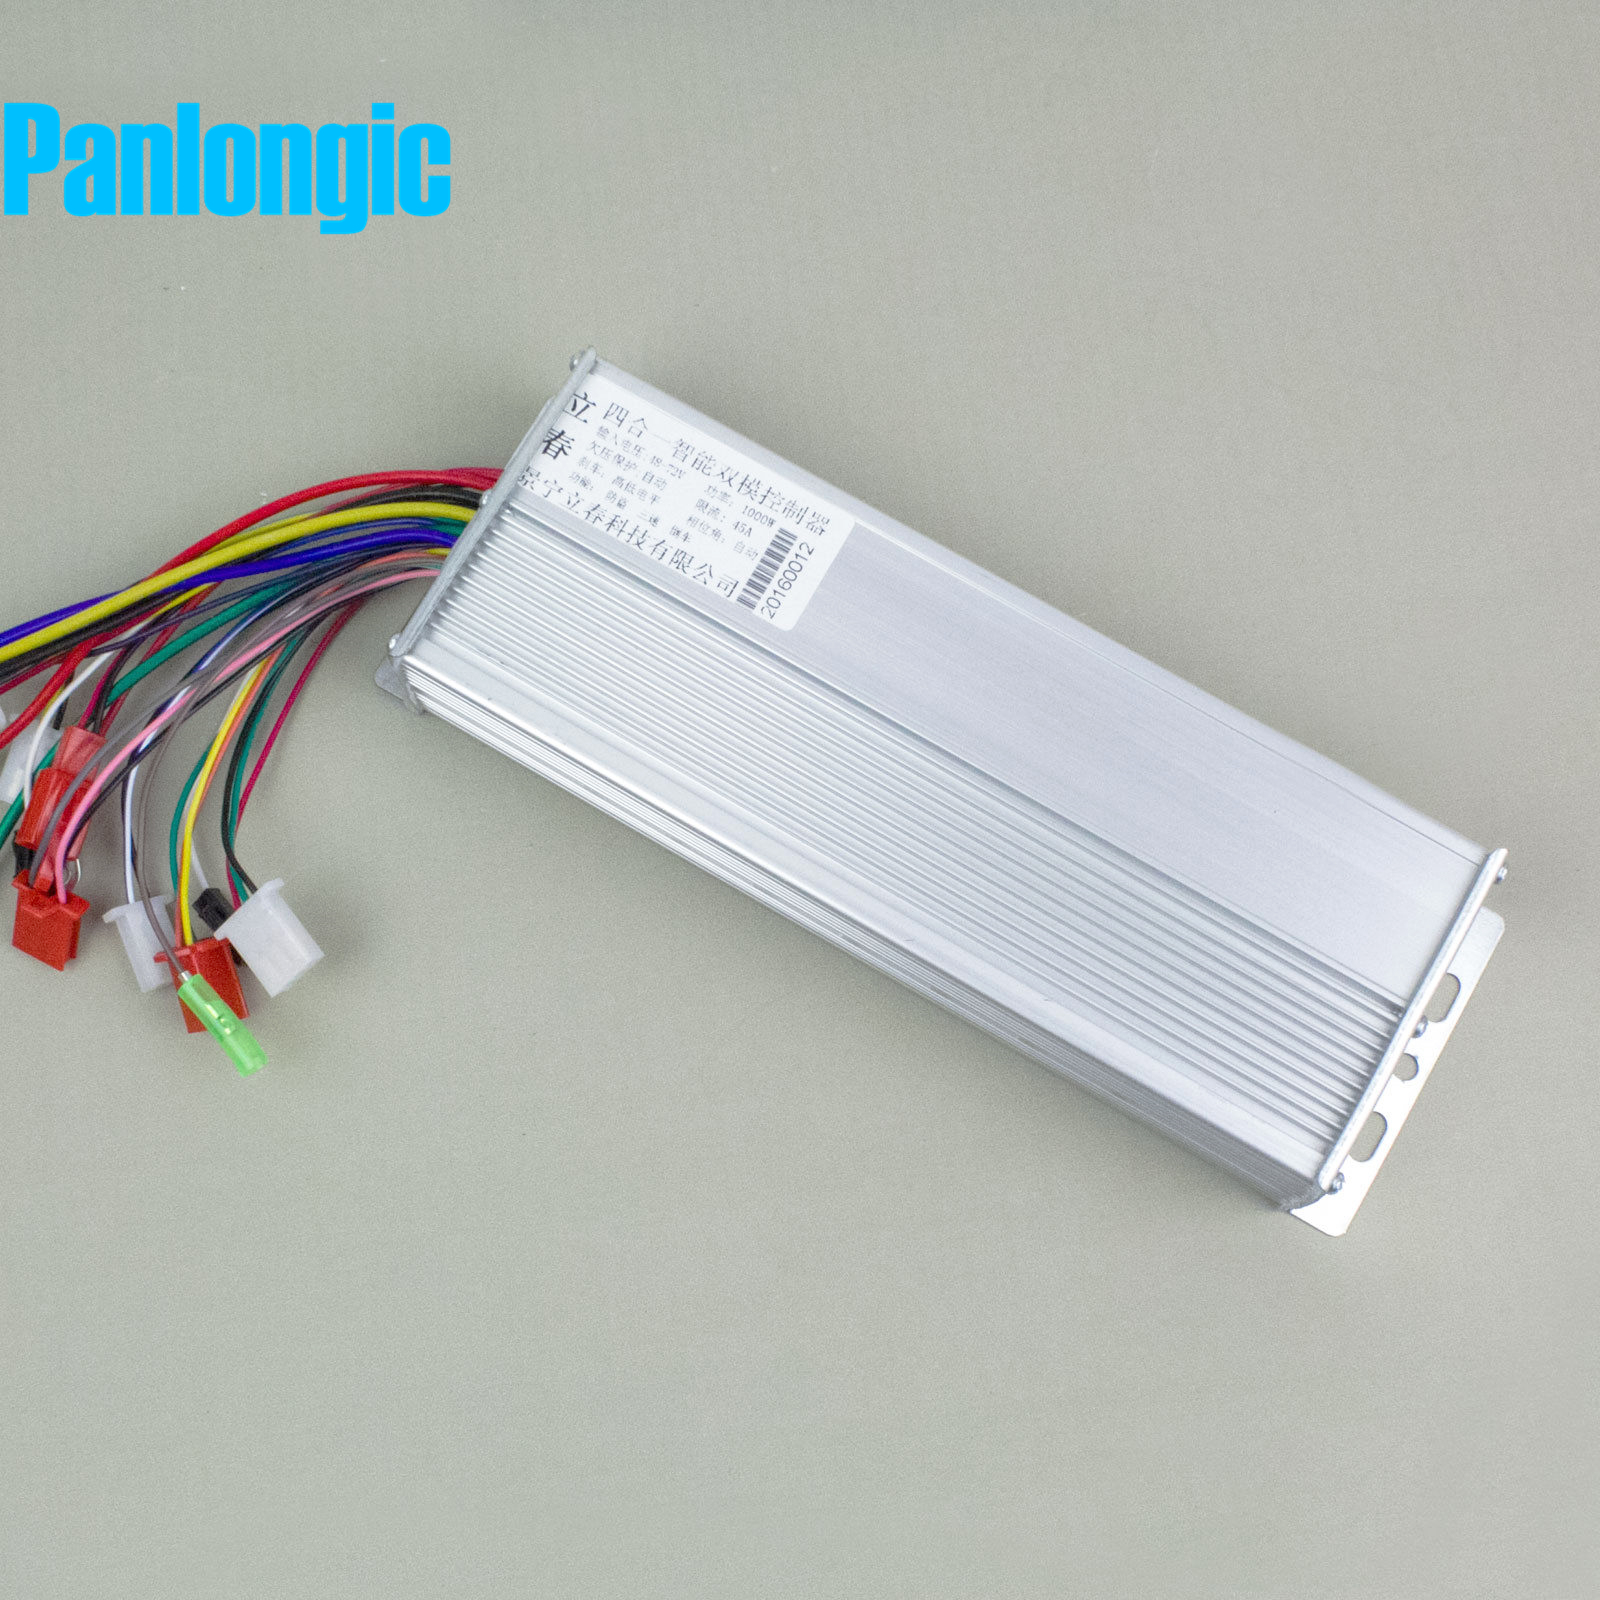 Panlongic 48-72V 1000W Electric Bicycle E-bike Scooter Brushless DC Motor Speed Controller fast shipping 1000w 60v dc 24 mofset brushless motor controller e bike electric bicycle speed control